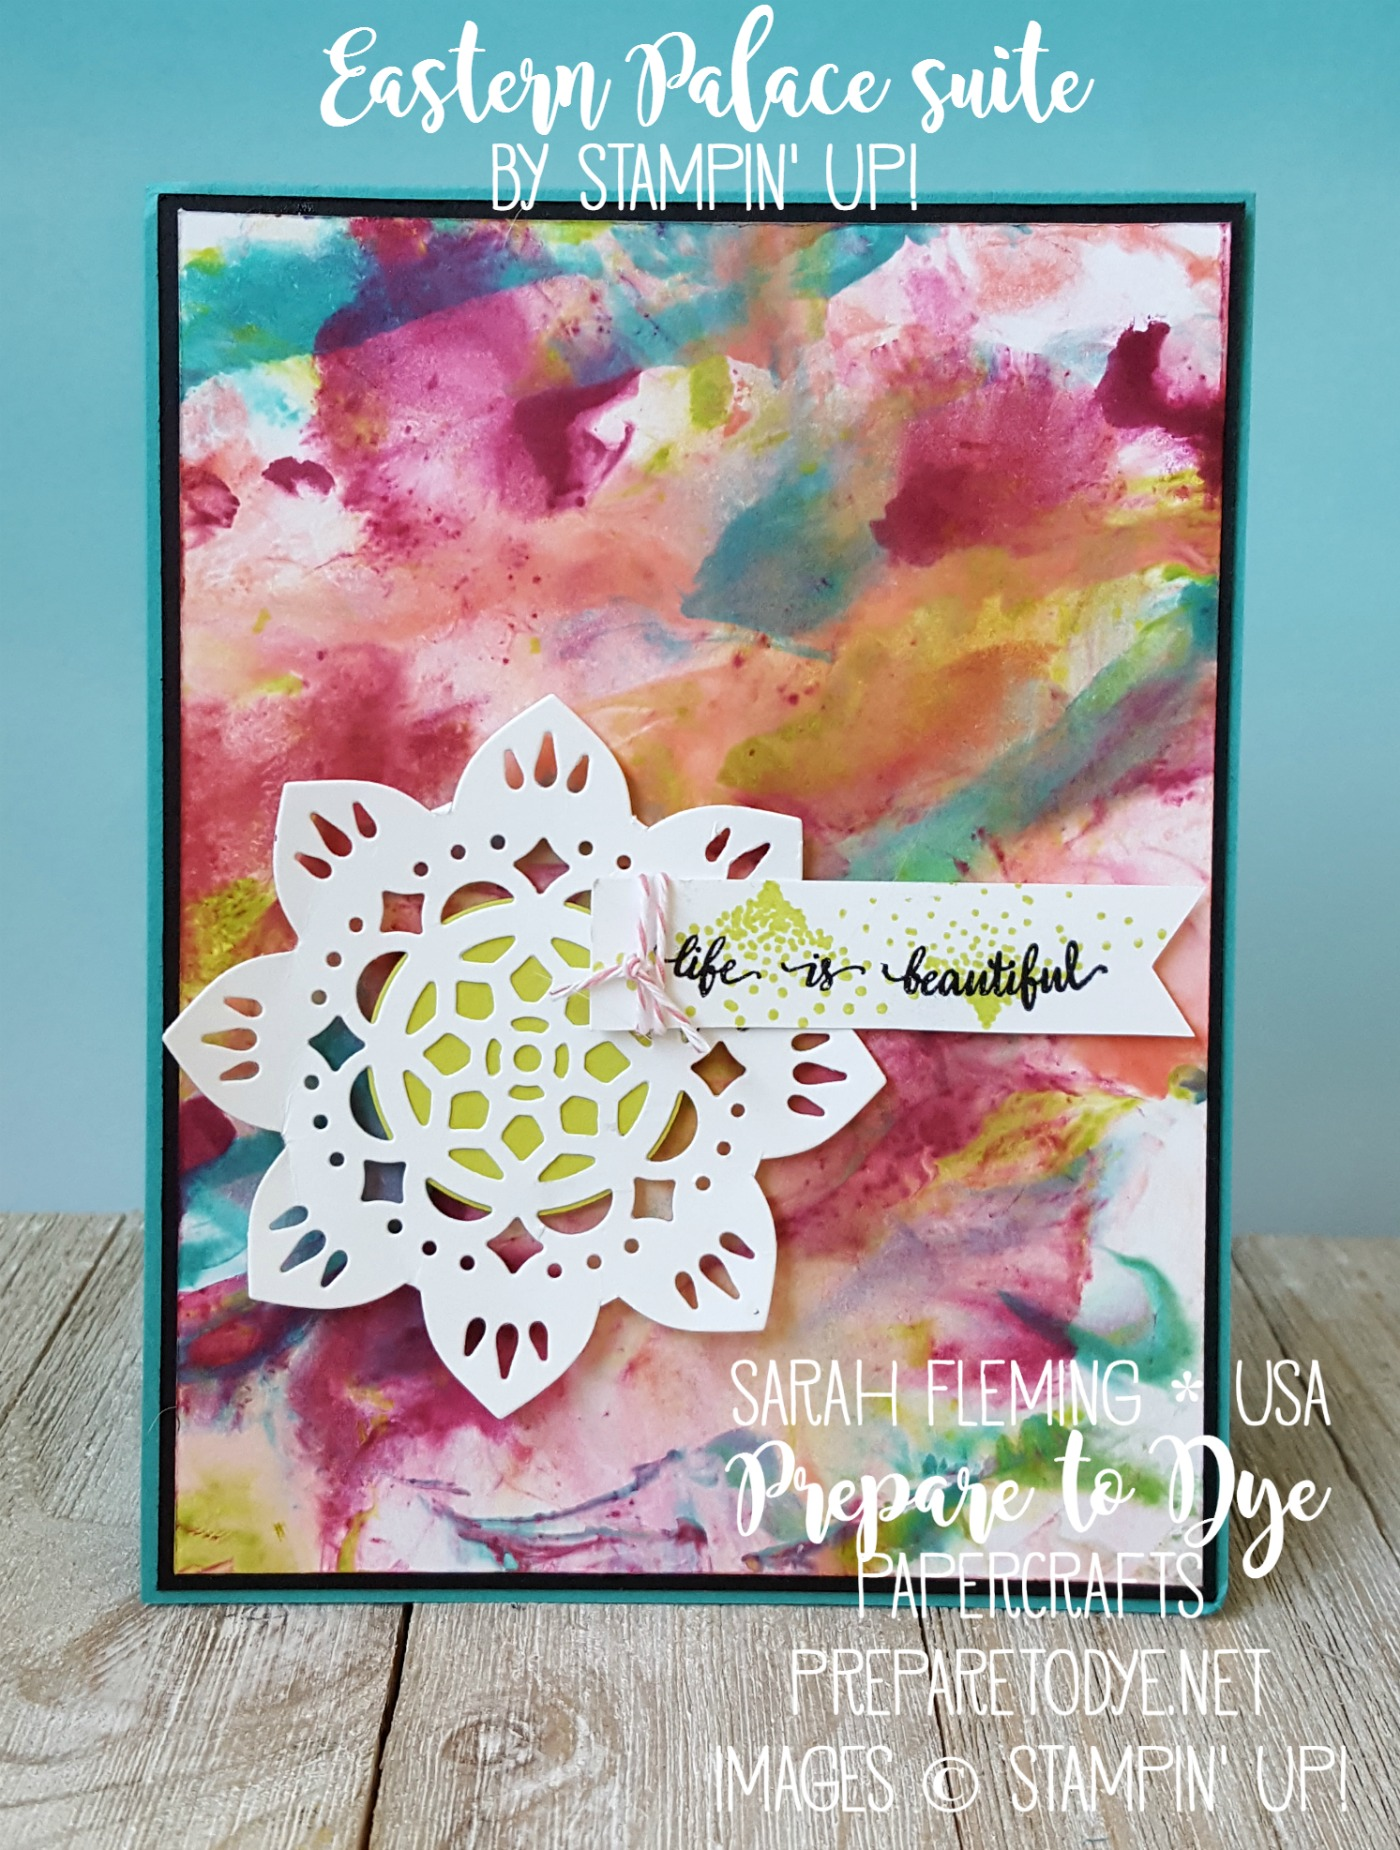 Stampin' Up! Eastern Beauty bundle with shaving cream background - Eastern Palace Suite - Sarah Fleming - Prepare to Dye Papercrafts